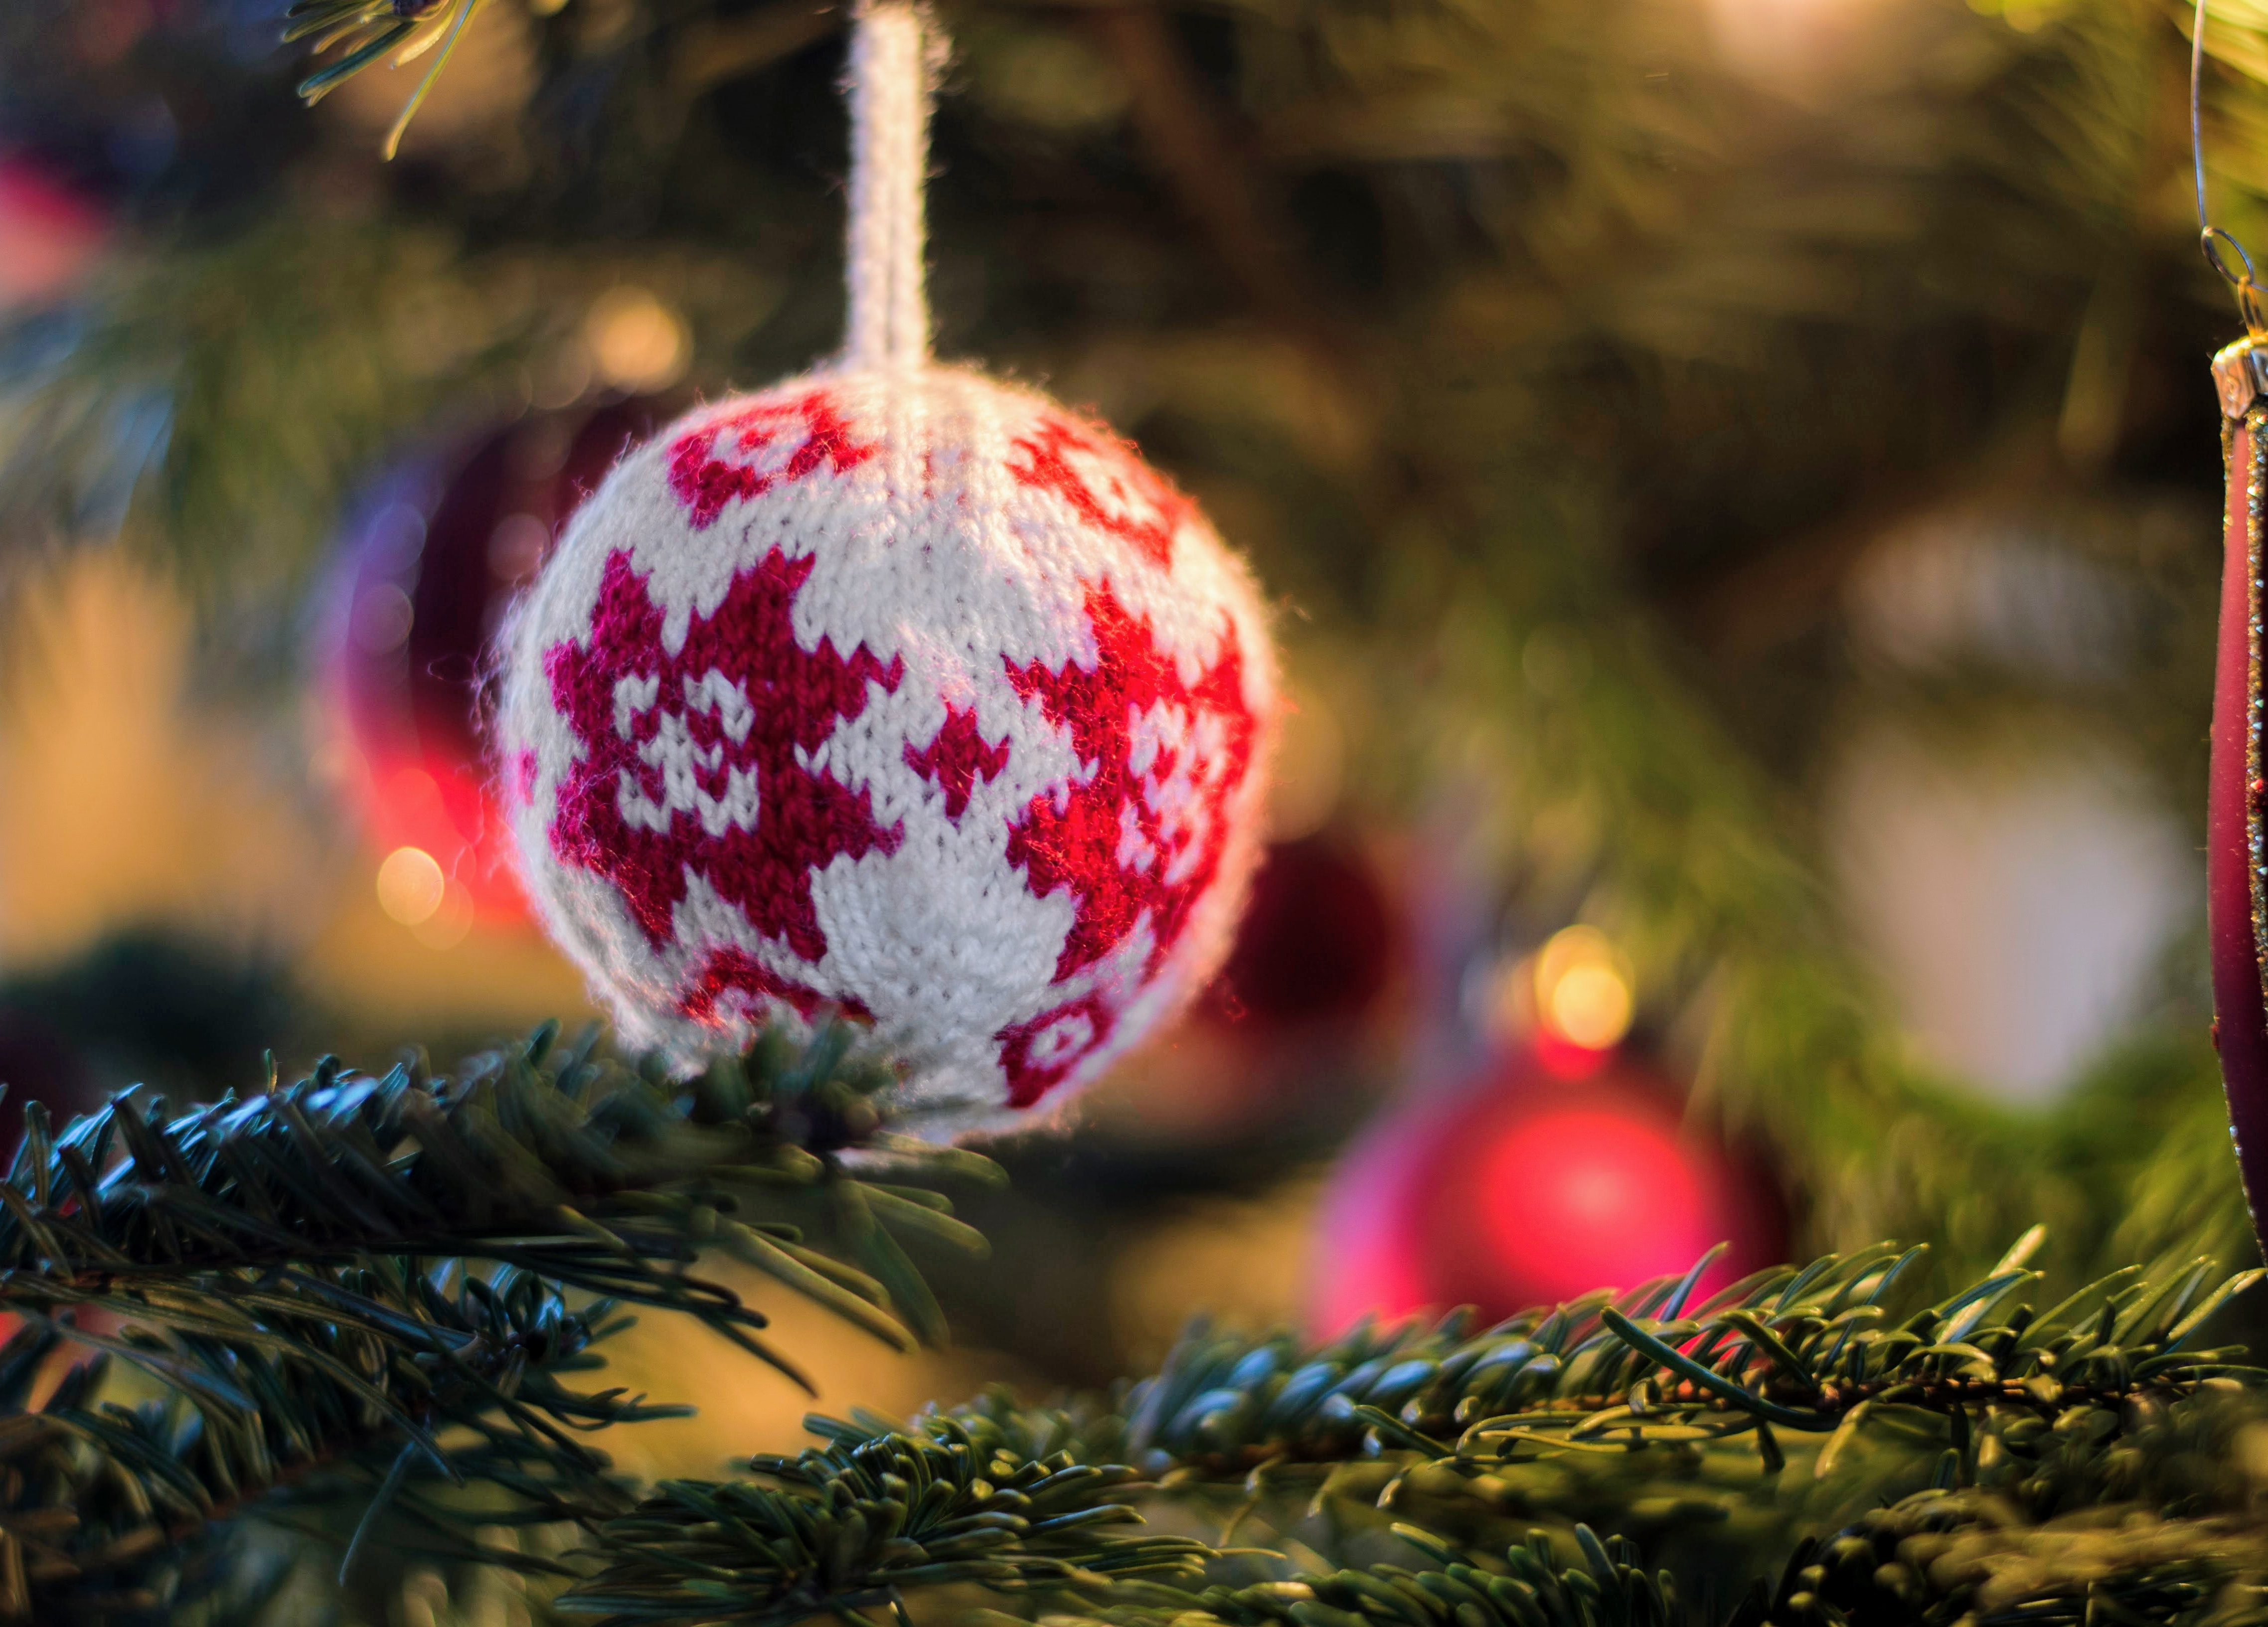 white and red knit bauble on green Christmas tree